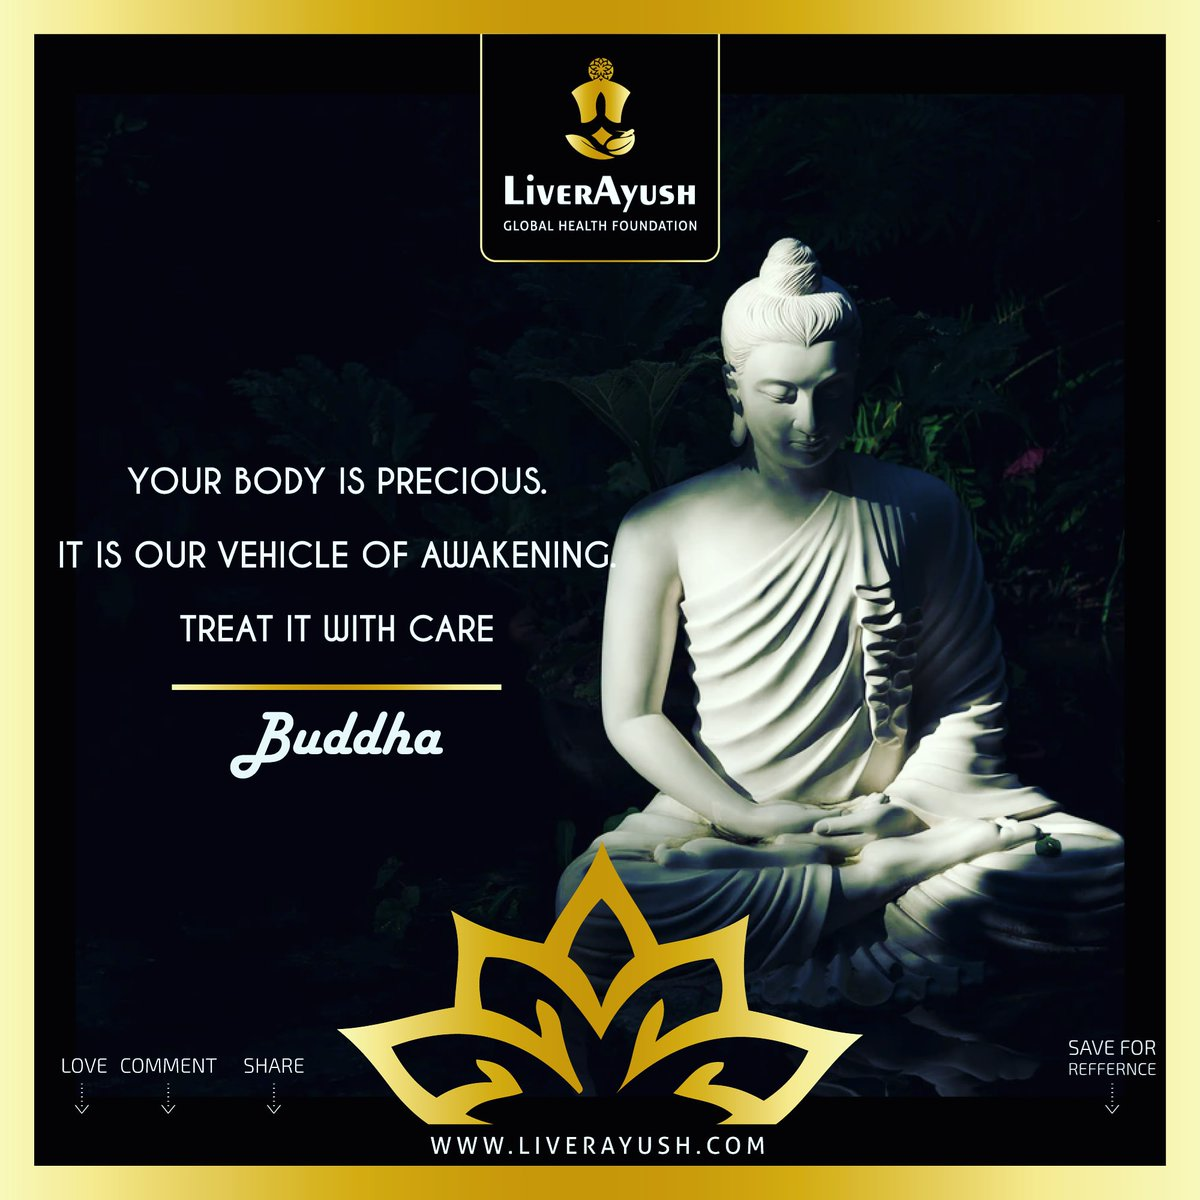 Do you agree!!!!??? Share your thoughts in the comments... . . #ayruveda #ayurvedafood #ayurvedicmedicine #ayurvedictreatment #ayurvedalifestyle  #ayurvedaeveryday #immunity #wellness #naturalfood #ancientayurveda  #healingherbs #ayurvedatreatment #ayurvedichealing #buddhaquotespic.twitter.com/pfqzsZgXRw